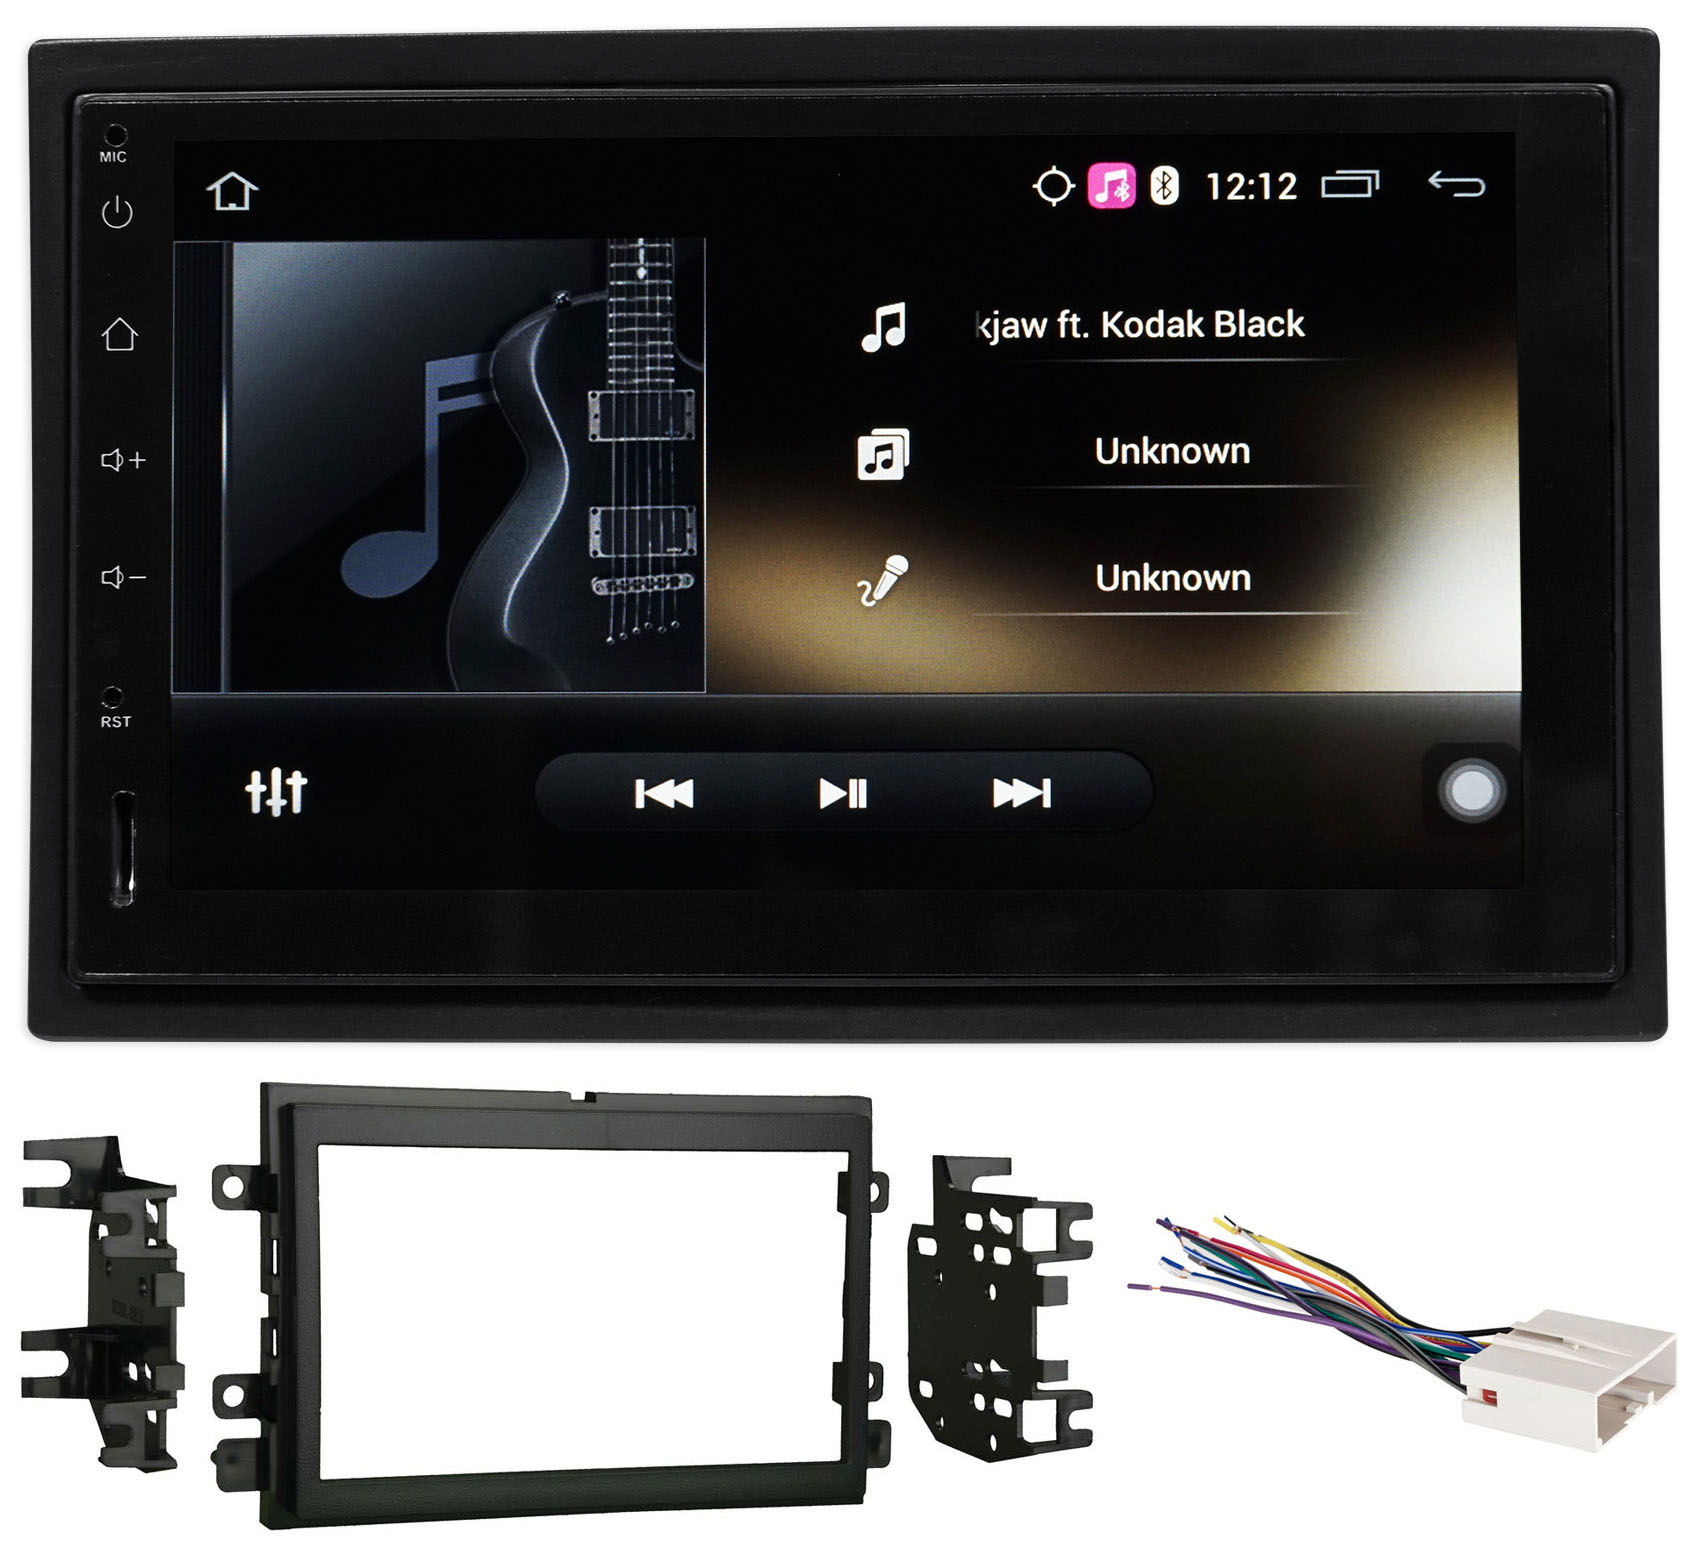 Car Navigation/Bluetooth/Wifi/Android Receiver For 2005-2006 Ford Mustang